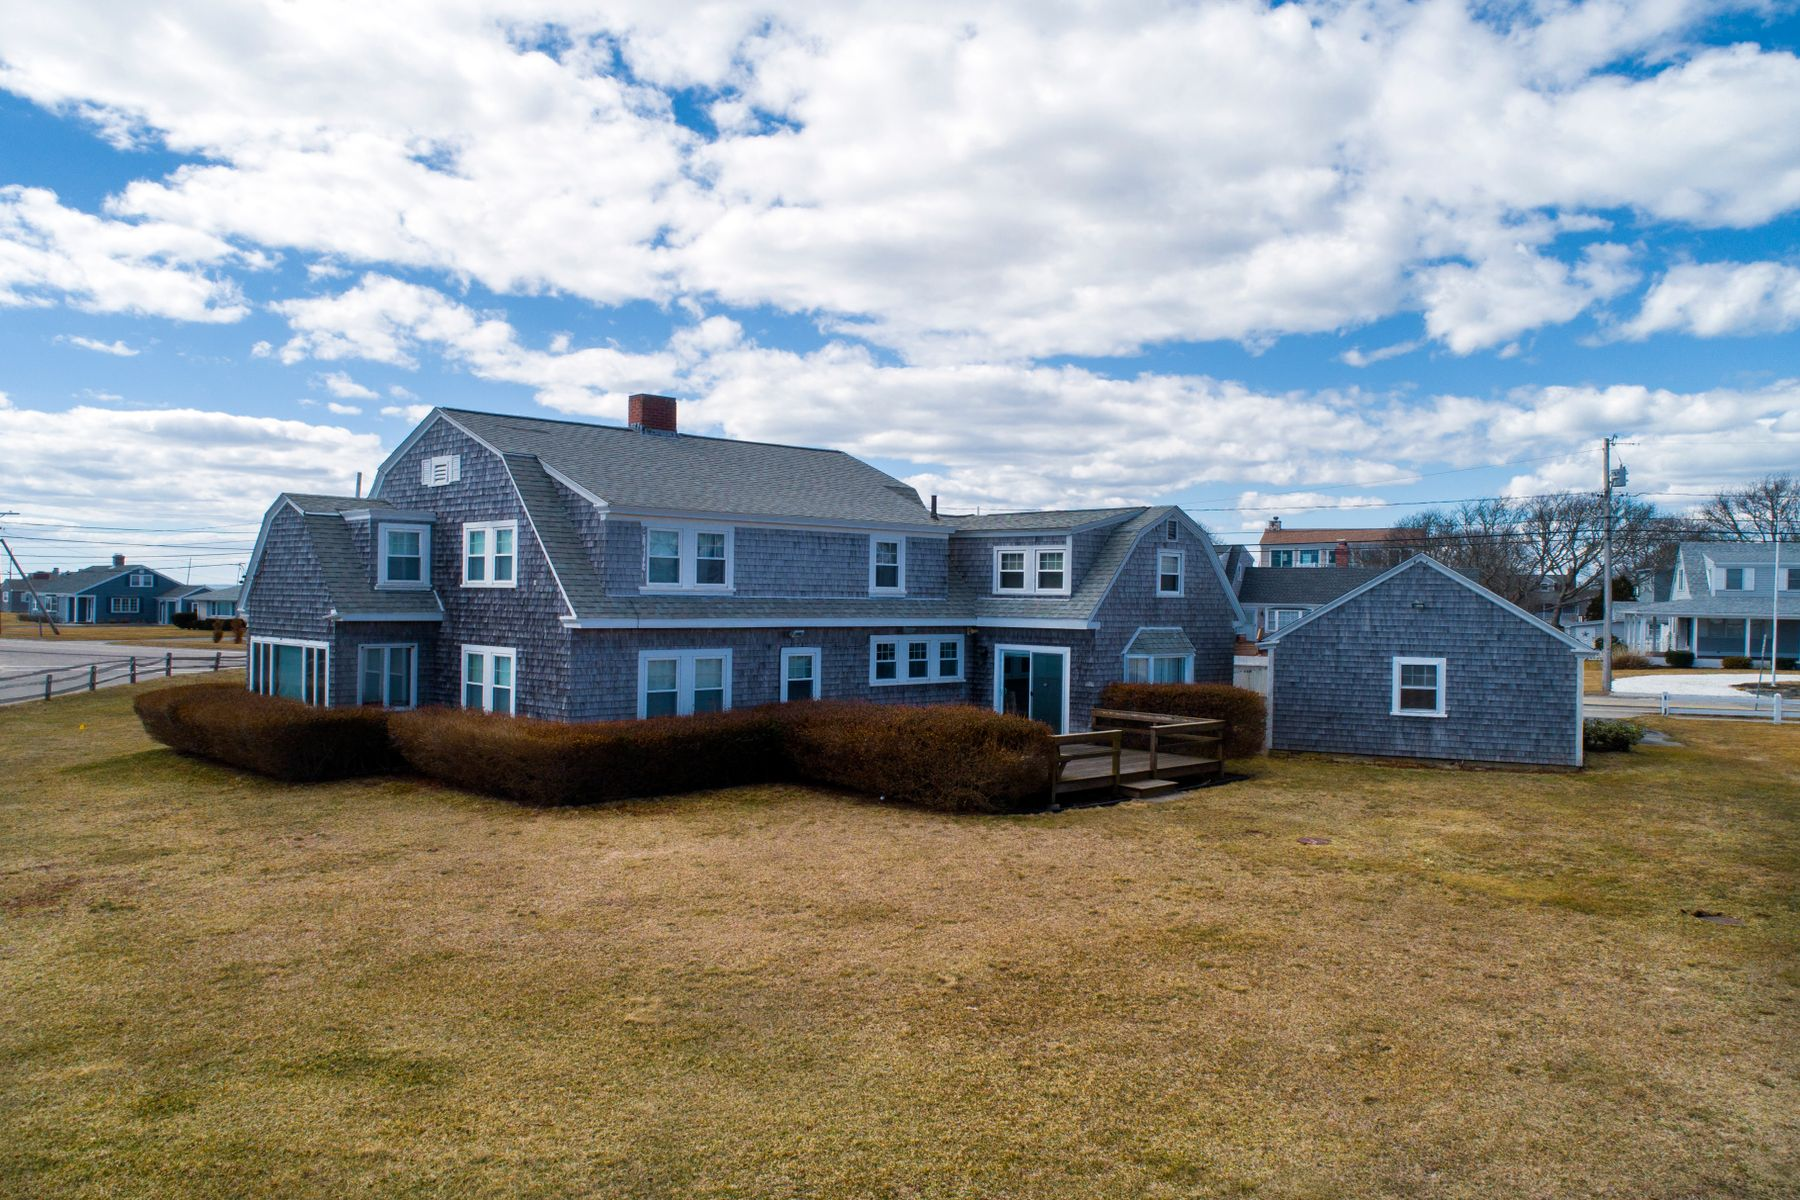 Single Family Home for Active at Ocean Views And Private Beach Rights 6 Ocean Avenue East Falmouth, Massachusetts 02536 United States